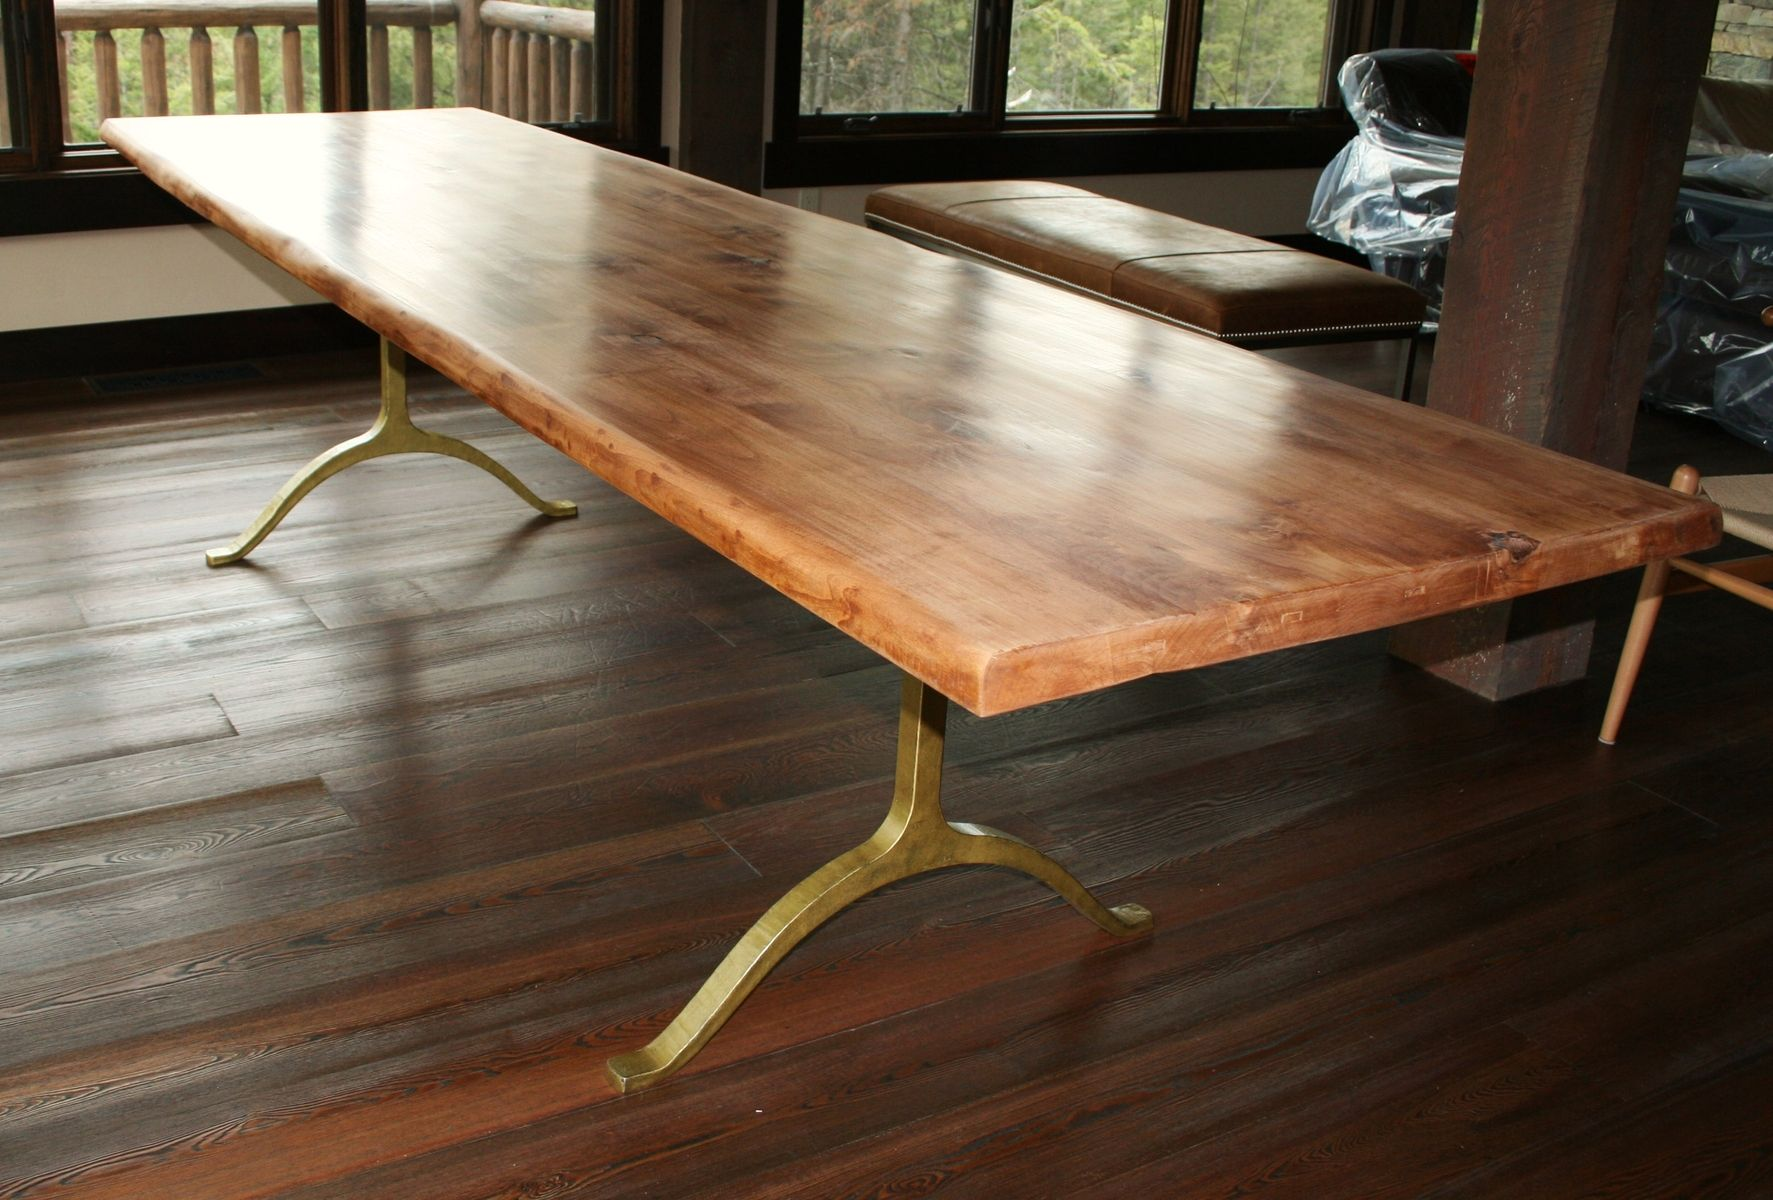 Handmade Rustic Dining Table By Echo Peak Design CustomMadecom